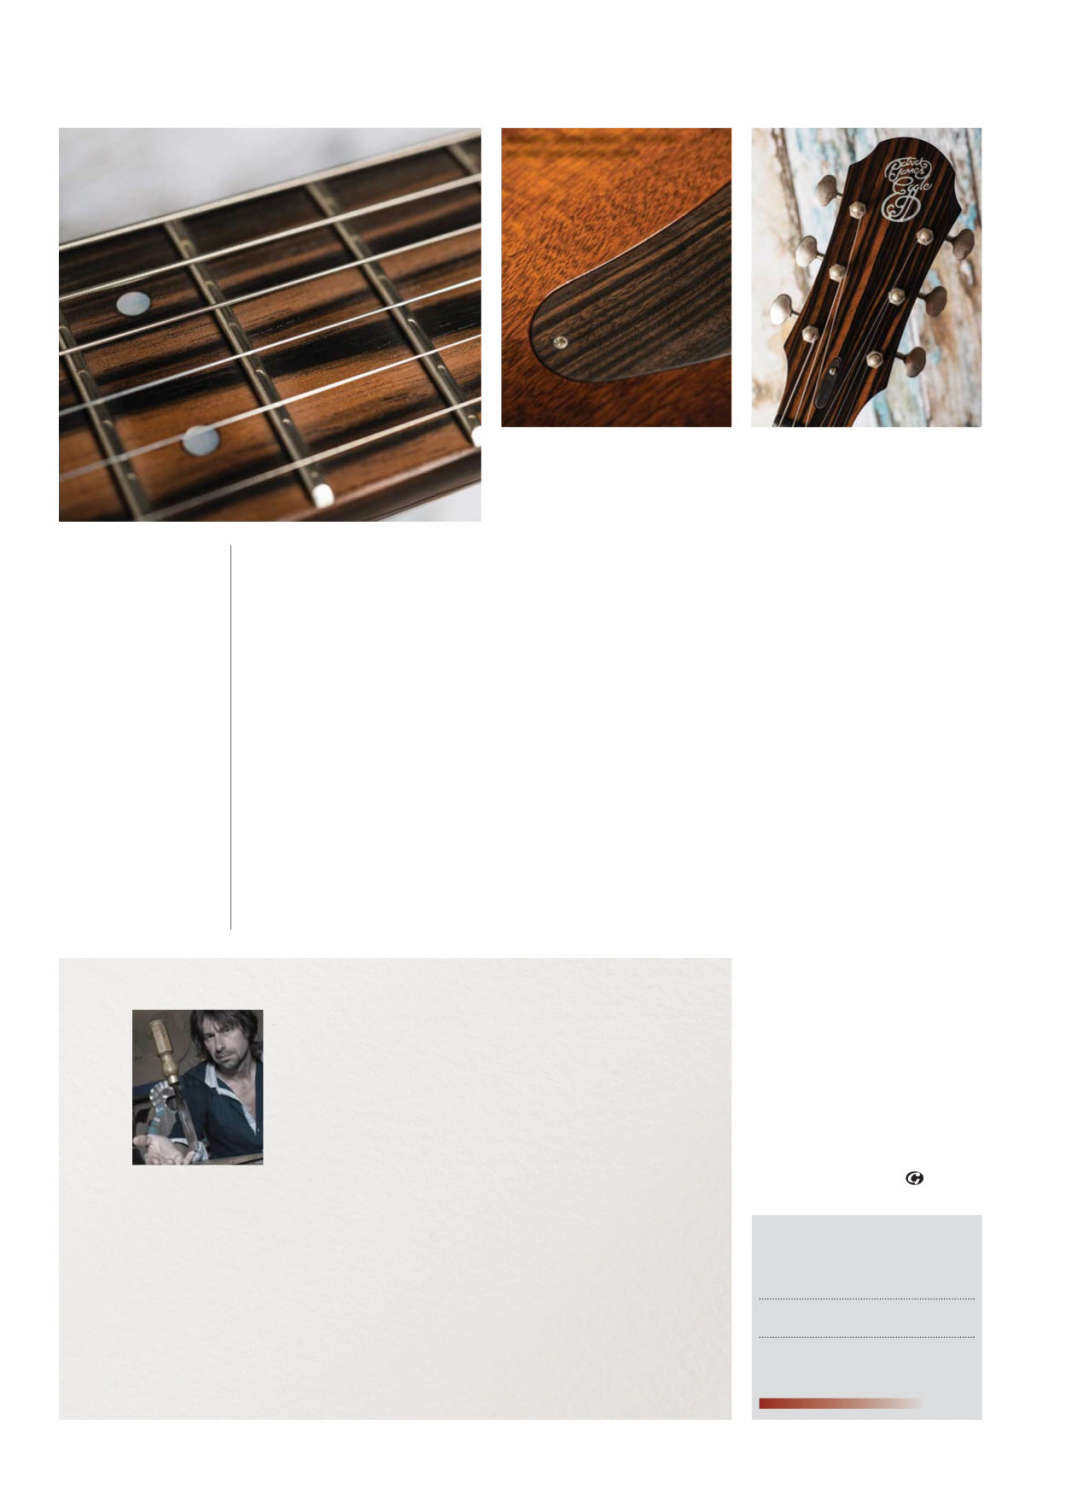 REVIEWED NEW LESSON INSIDE! IMPROVE YOUR GUITAR CHORD VOCABULARY NOW